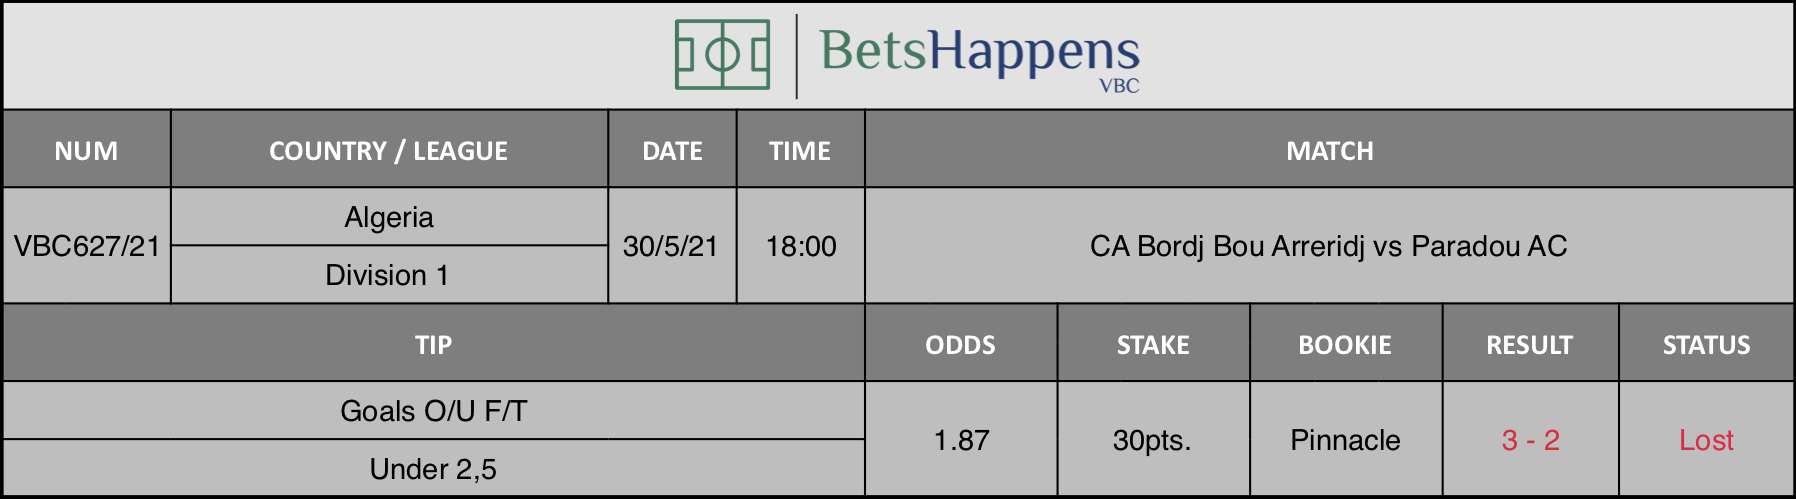 Results of our tip for the CA Bordj Bou Arreridj vs Paradou AC match where Goals O/U F/T Under 2,5 is recommended.